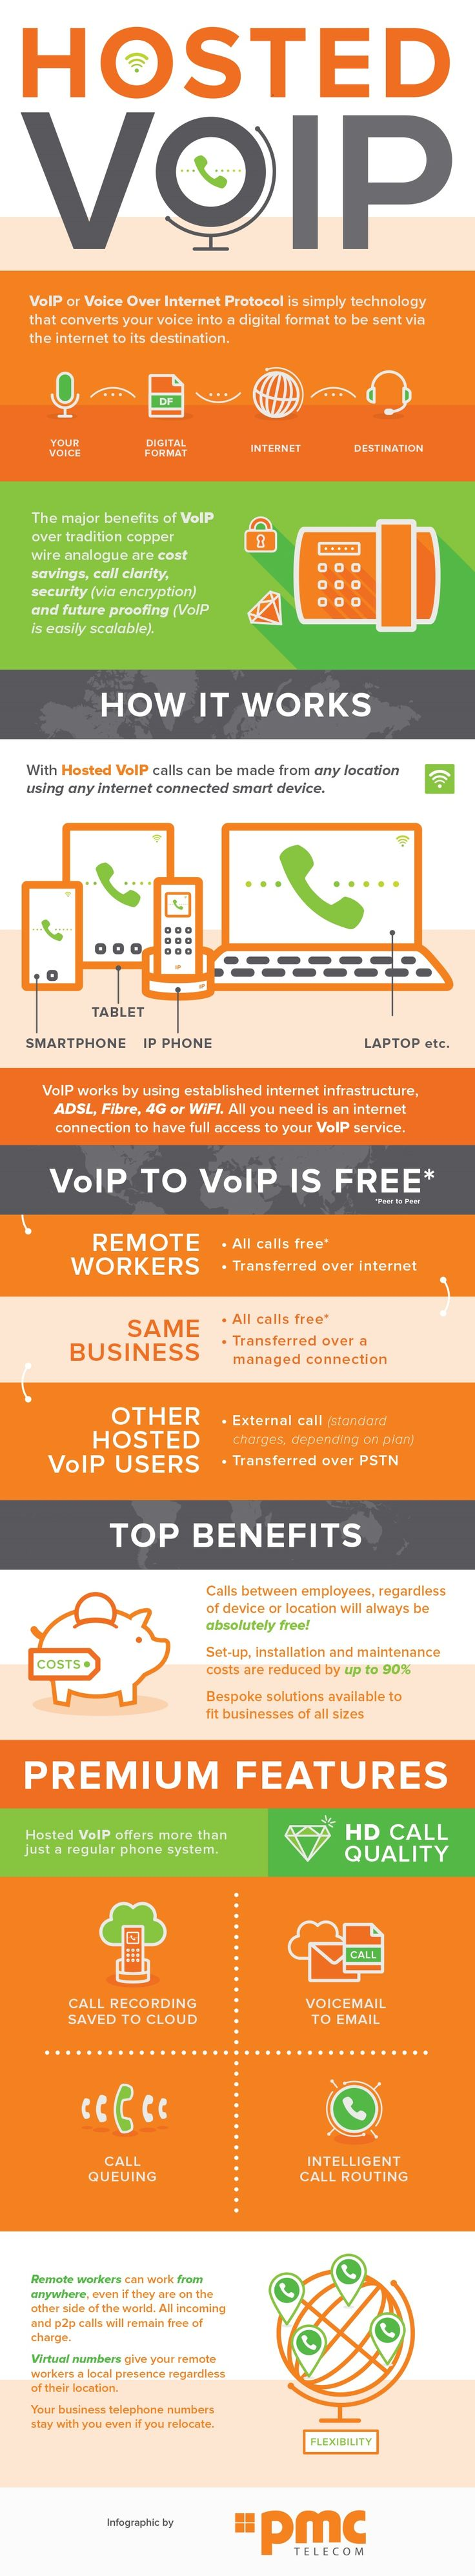 Infographic_Hosted VoIP v3